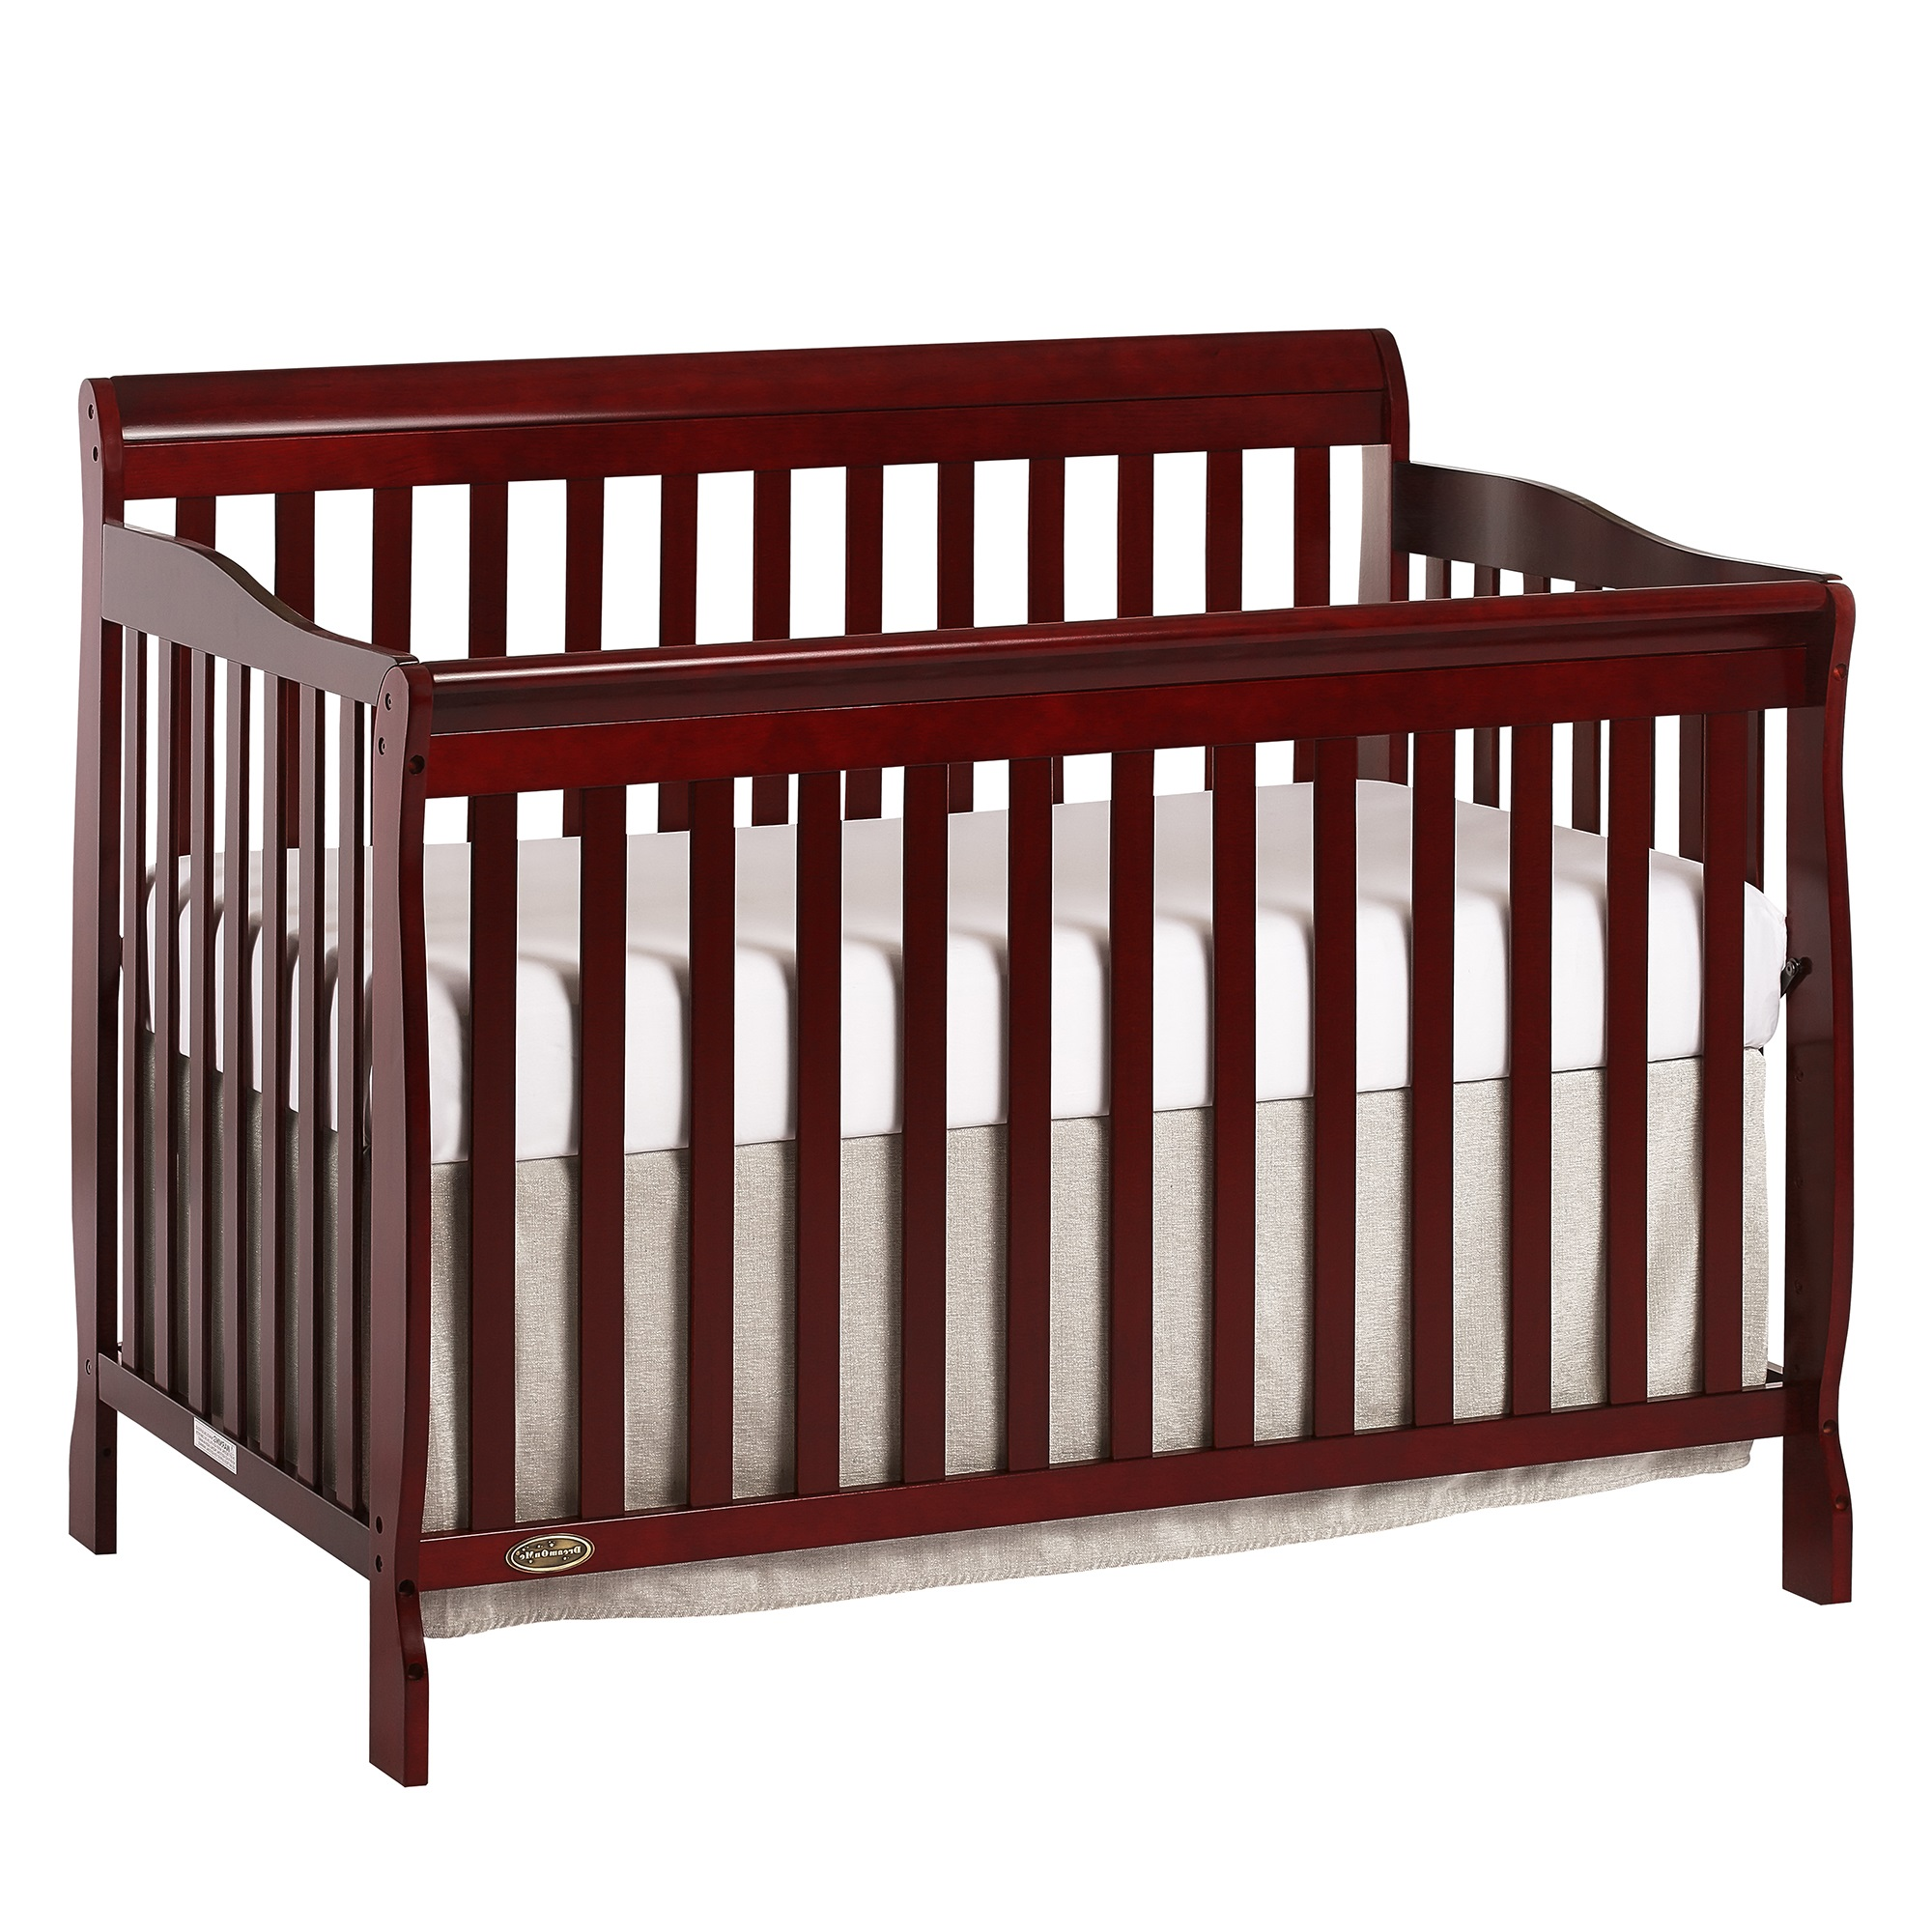 Dream On Me Ashton Convertible 5-in-1 Crib, Pearl White